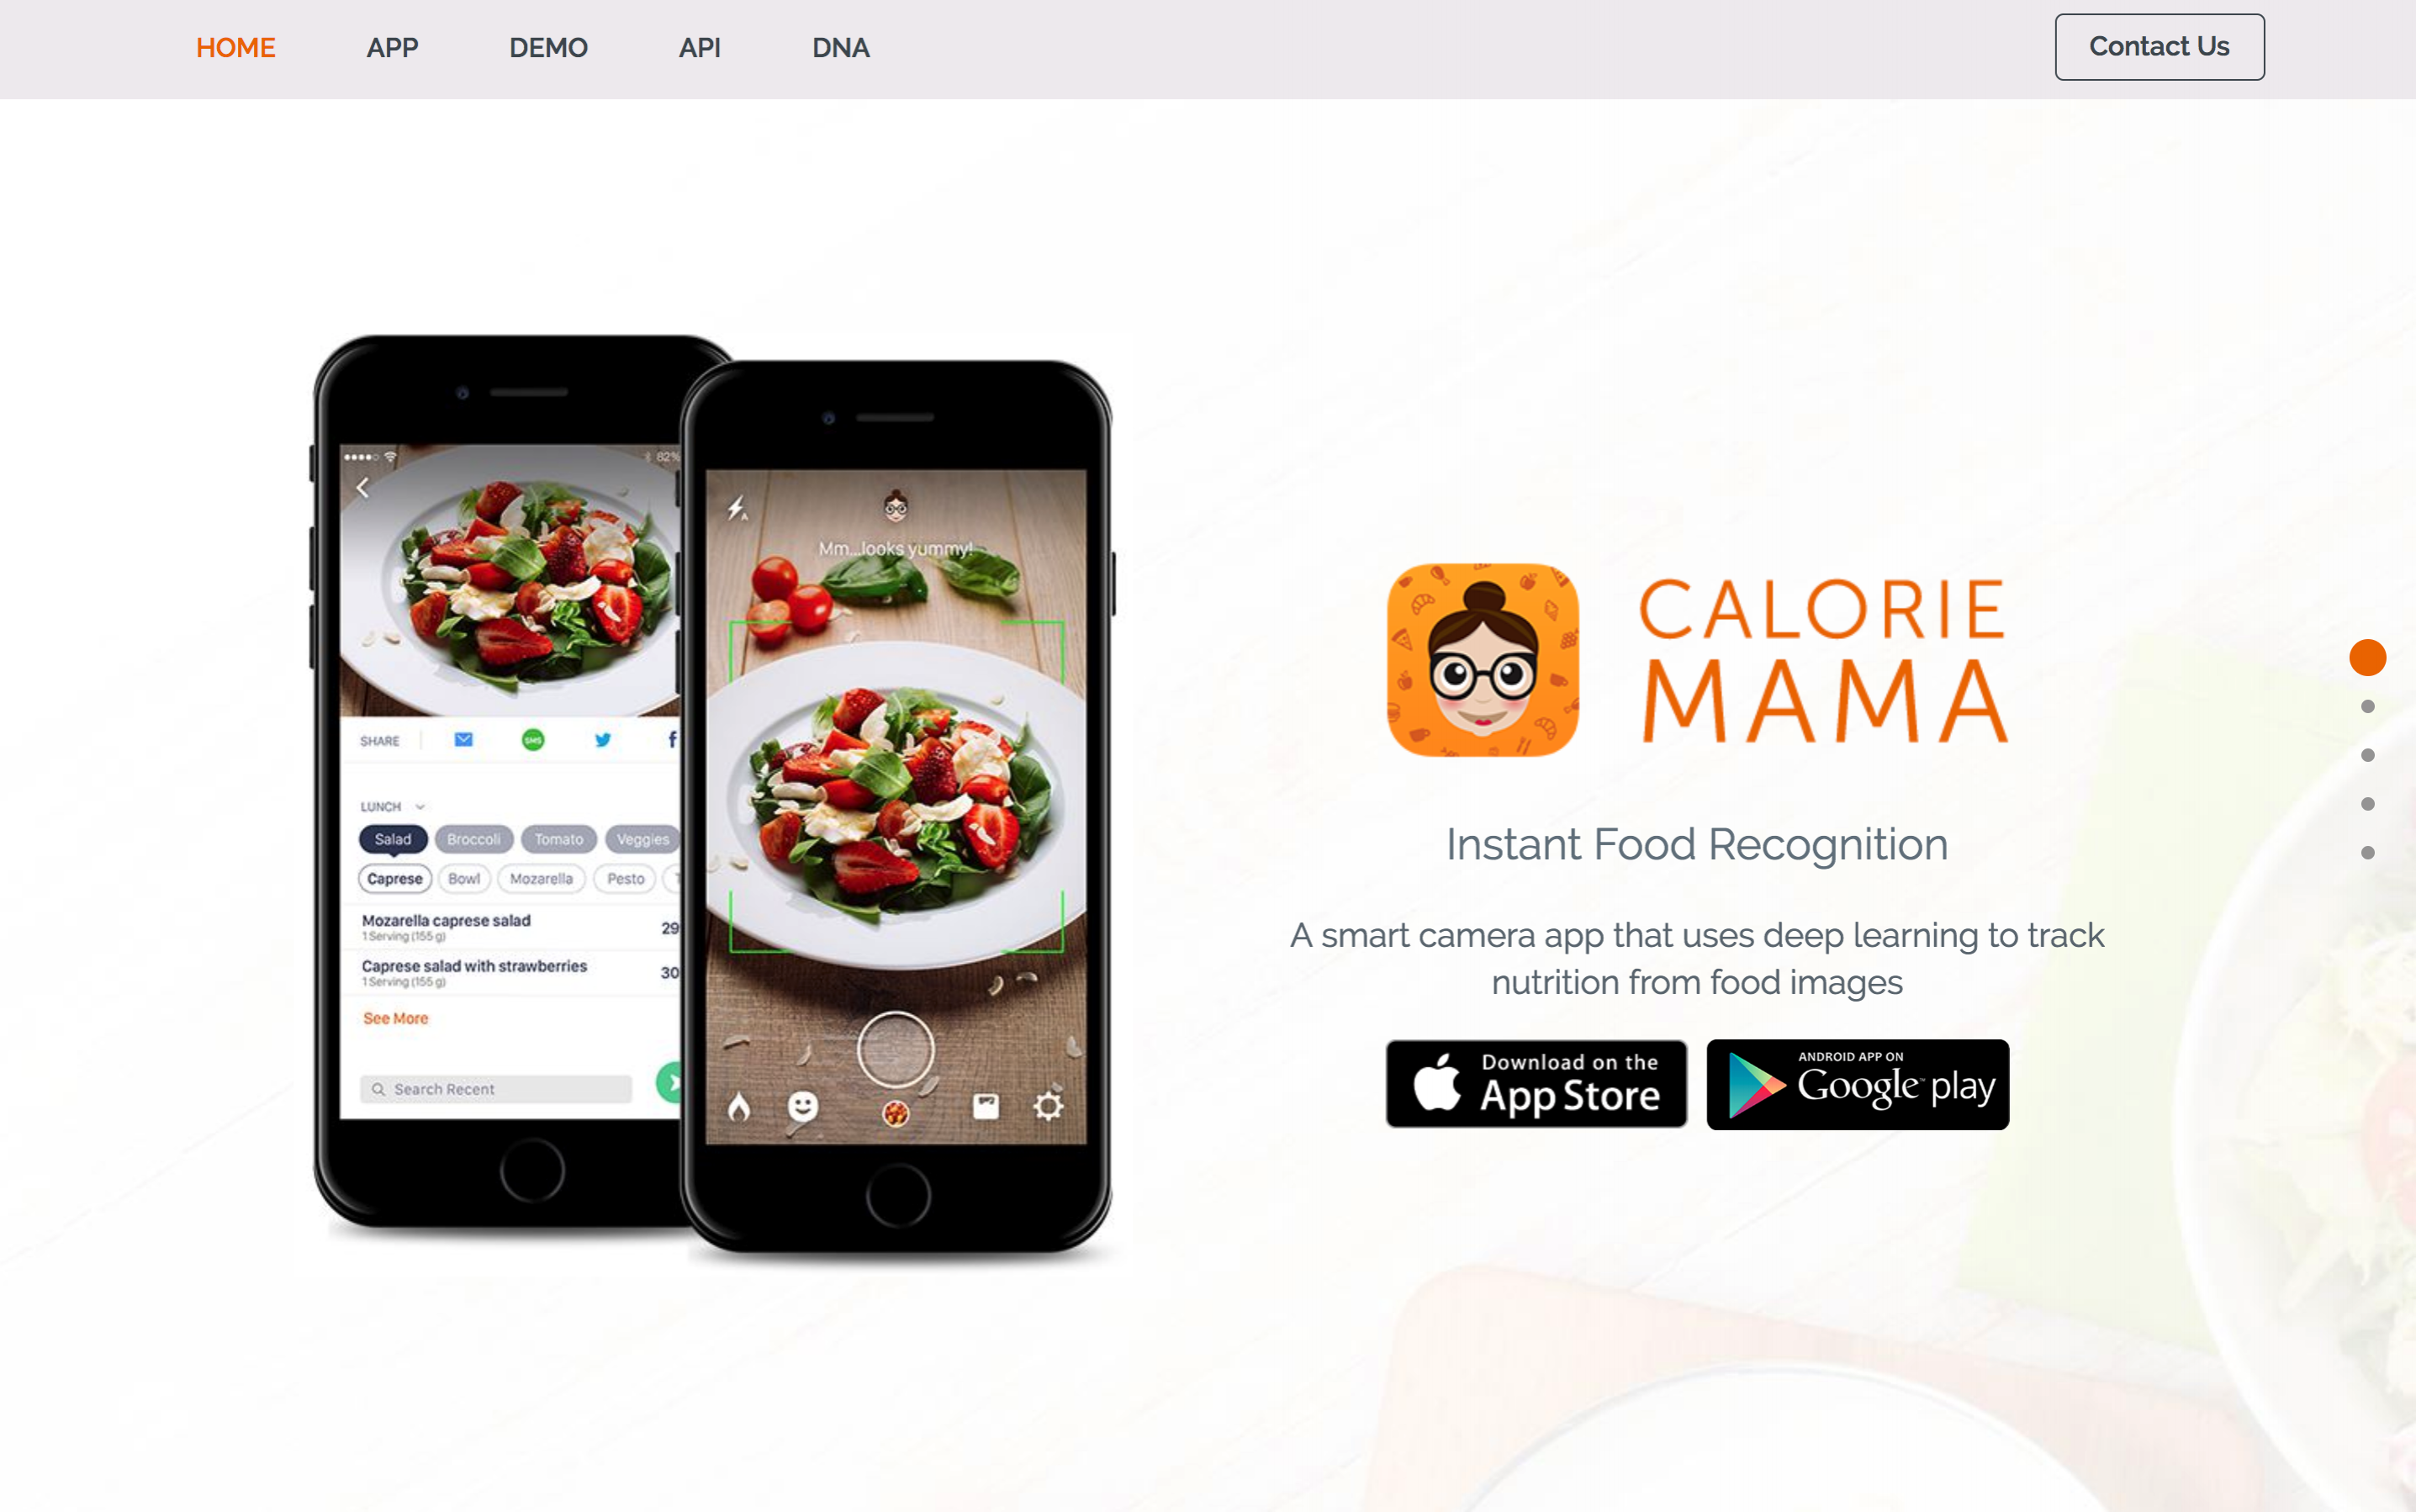 Calorie Mama Food AI - Food Image Recognition and Calorie Counter using Deep Learning 2018-10-08 13-52-22-618594-edited